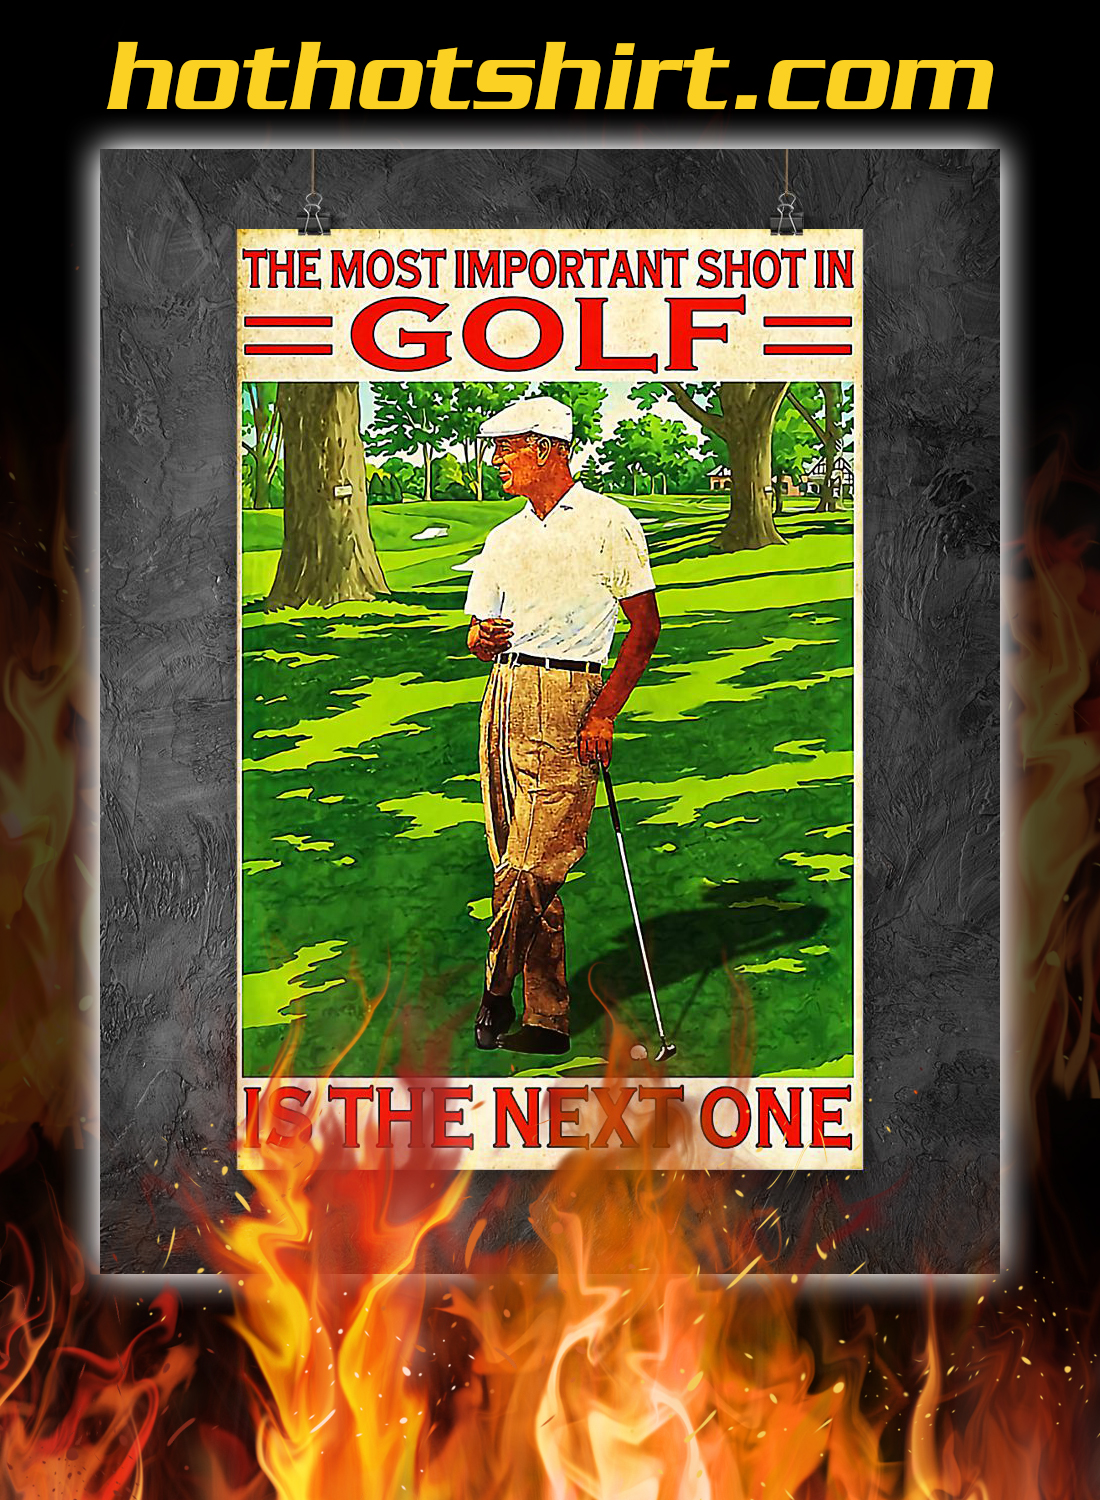 The most important shot in golf poster 1